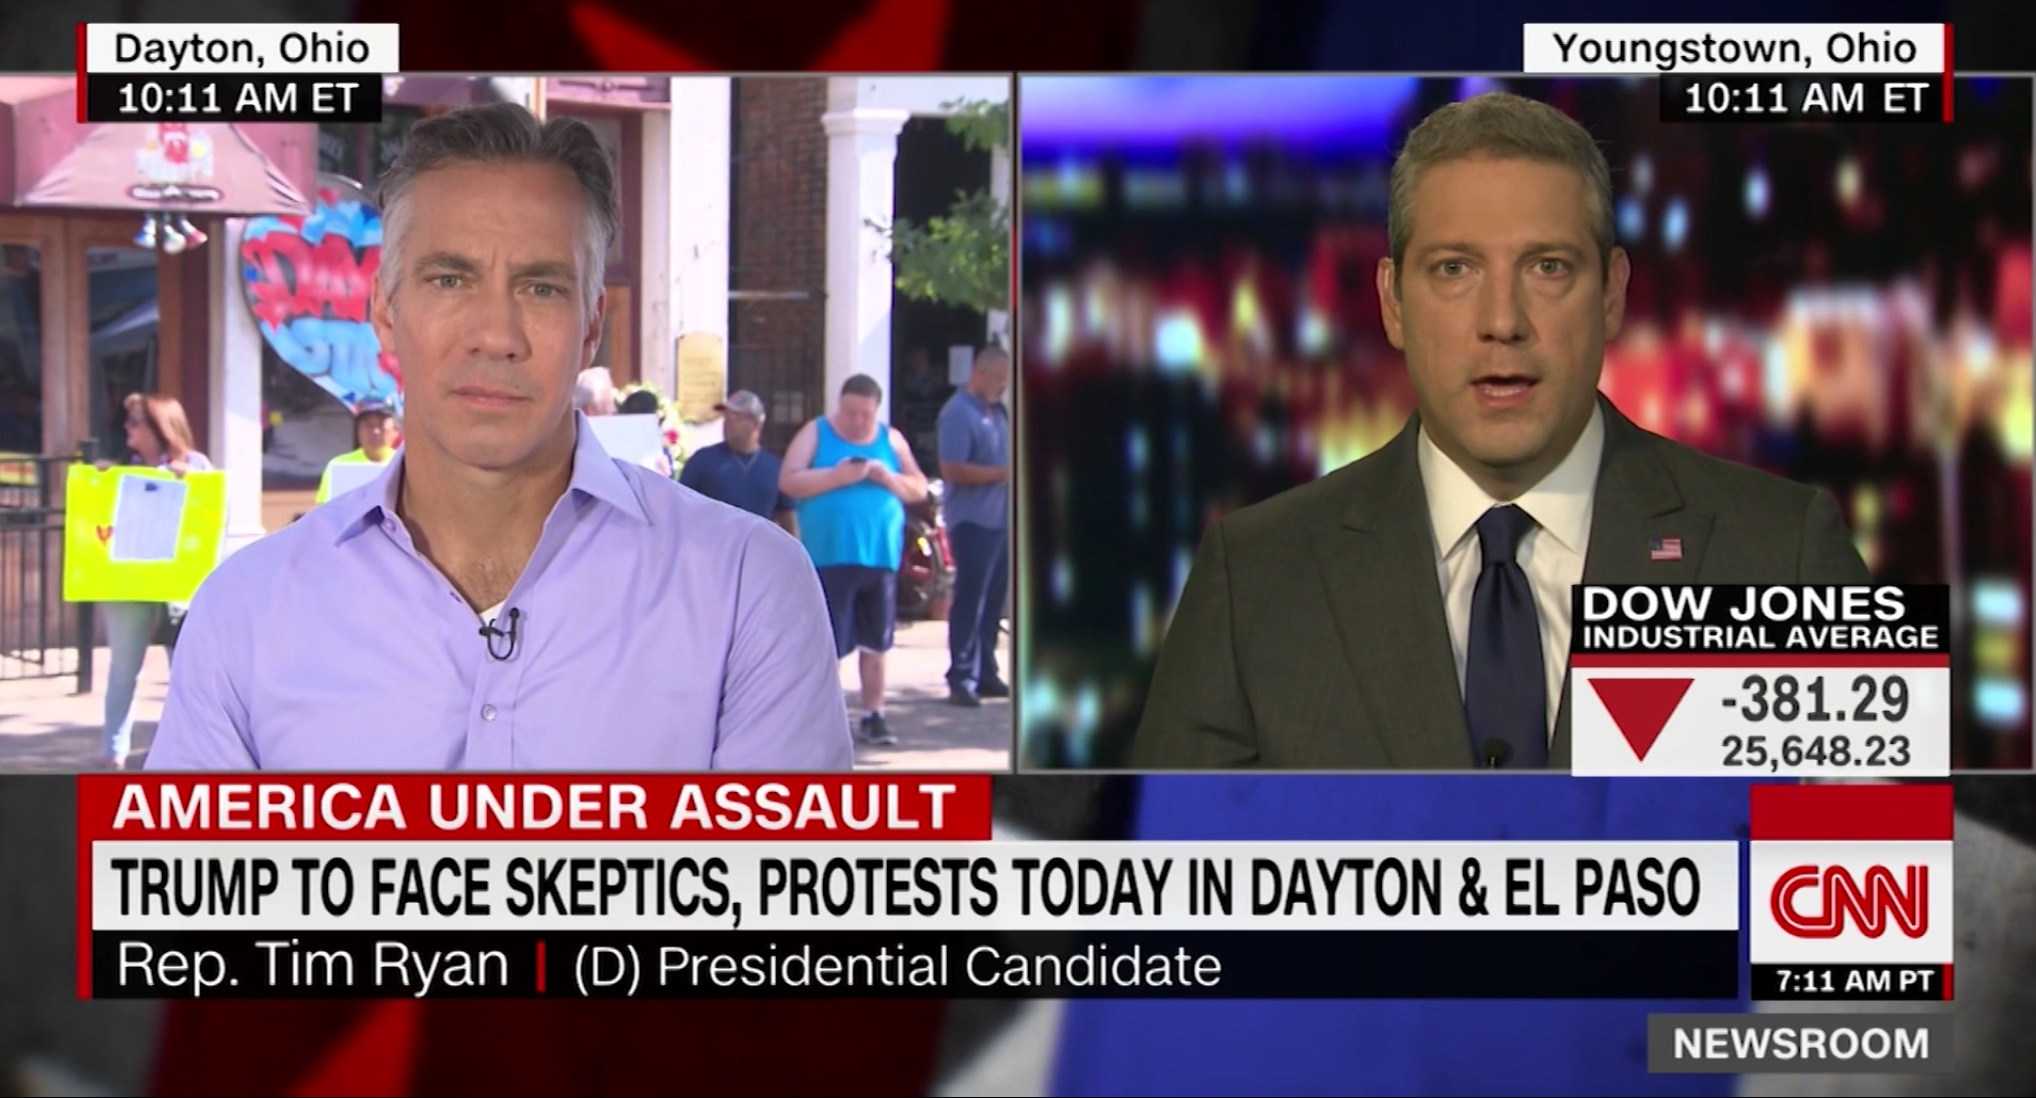 Ohio Democratic Rep. Tim Ryan speaks to CNN about his plans to bring a caravan to Sen. Mitch McConnell's house to support gun control, Aug. 7, 2019. CNN screenshot.